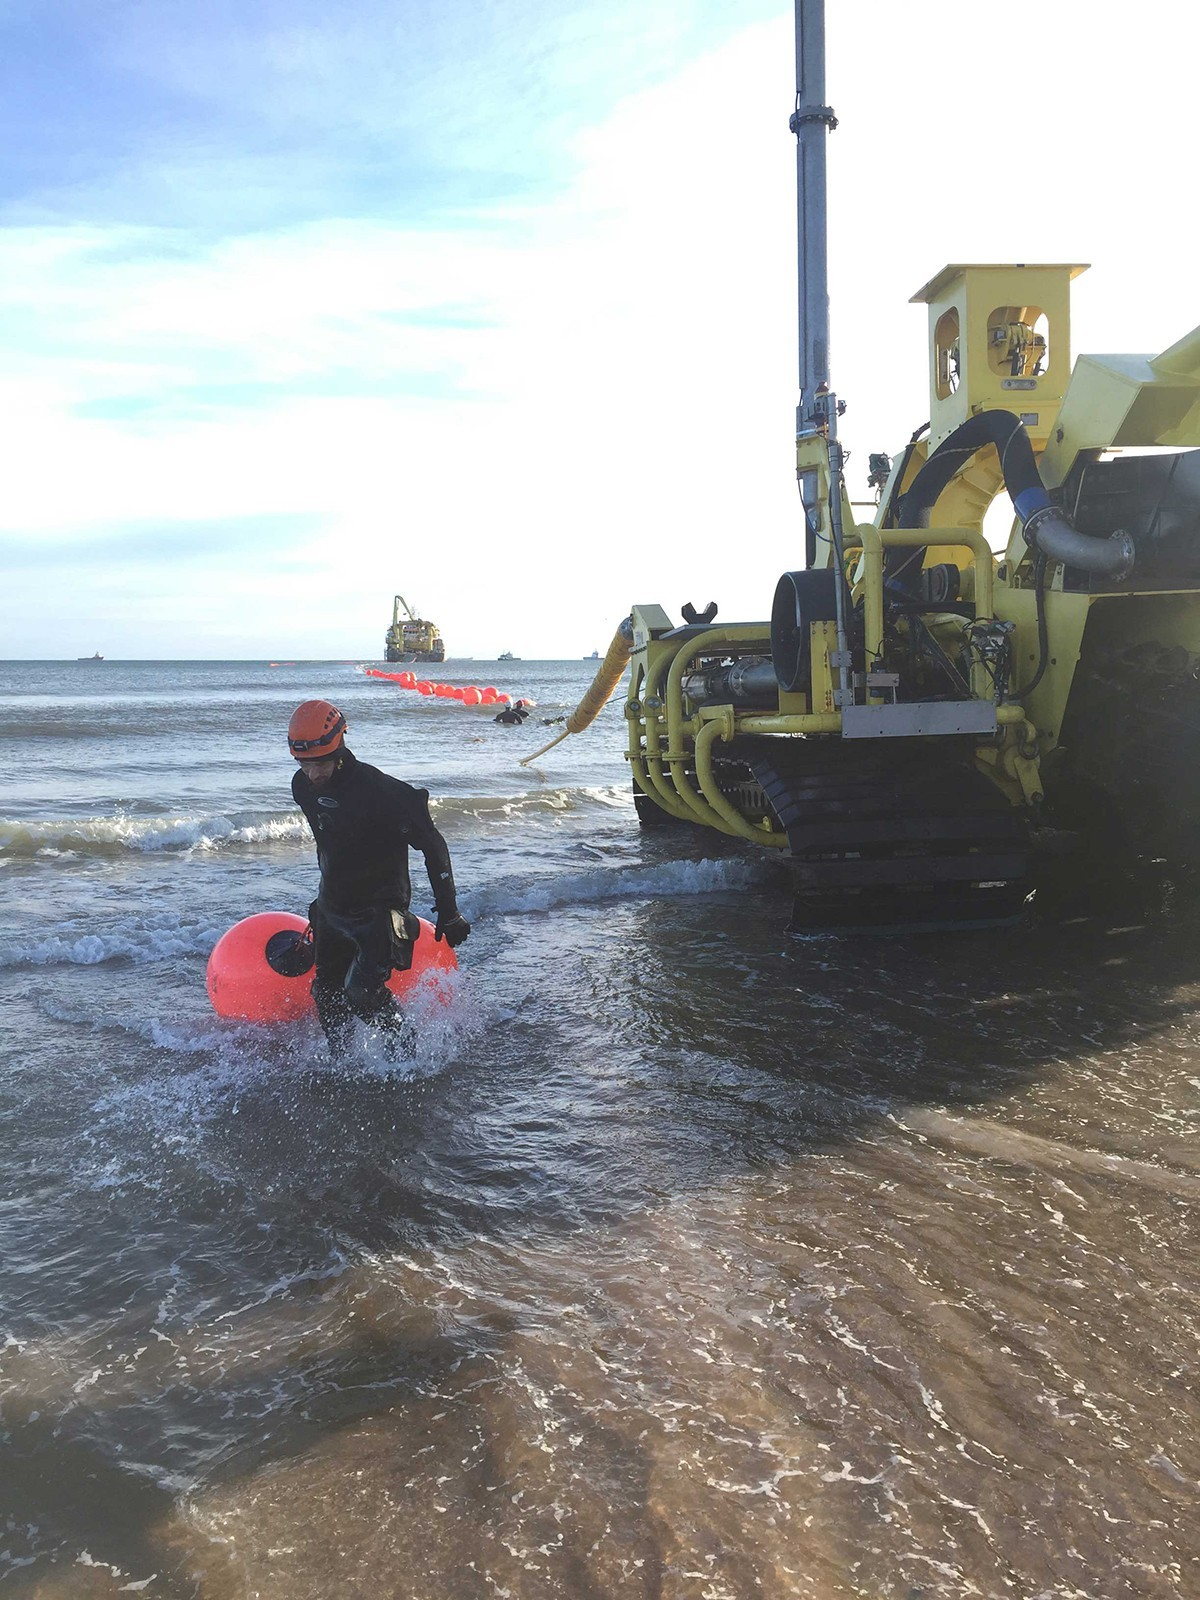 Wet riggers removing buoys from cable